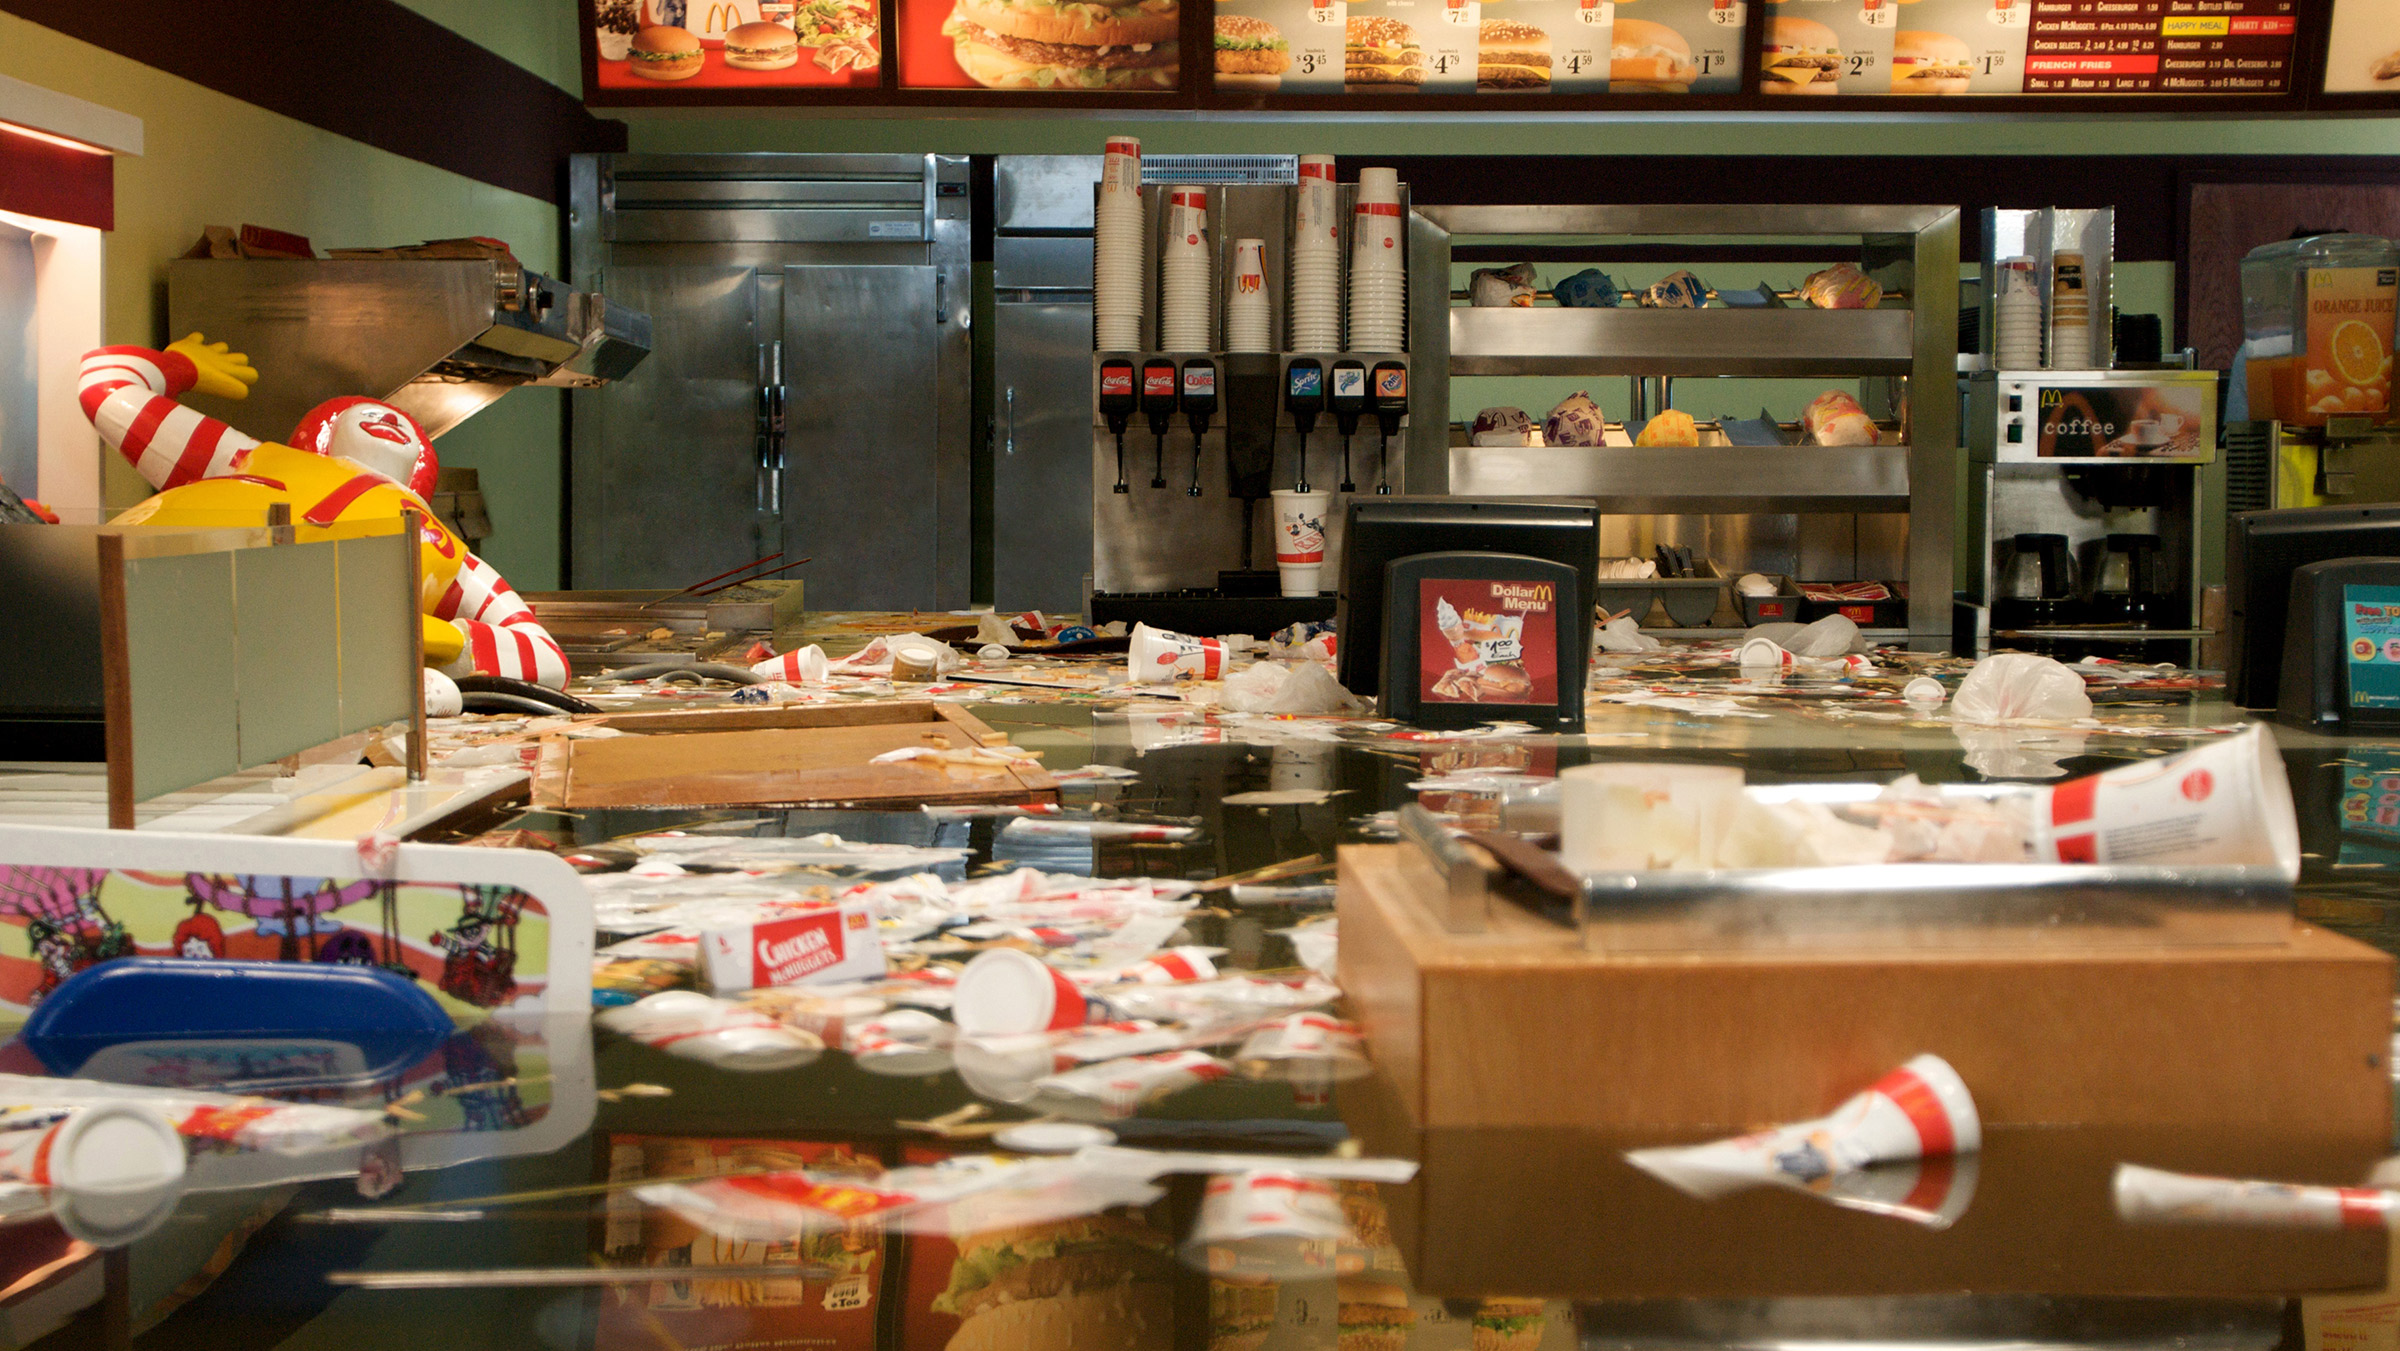 Chaotic messy scene in a McDonalds